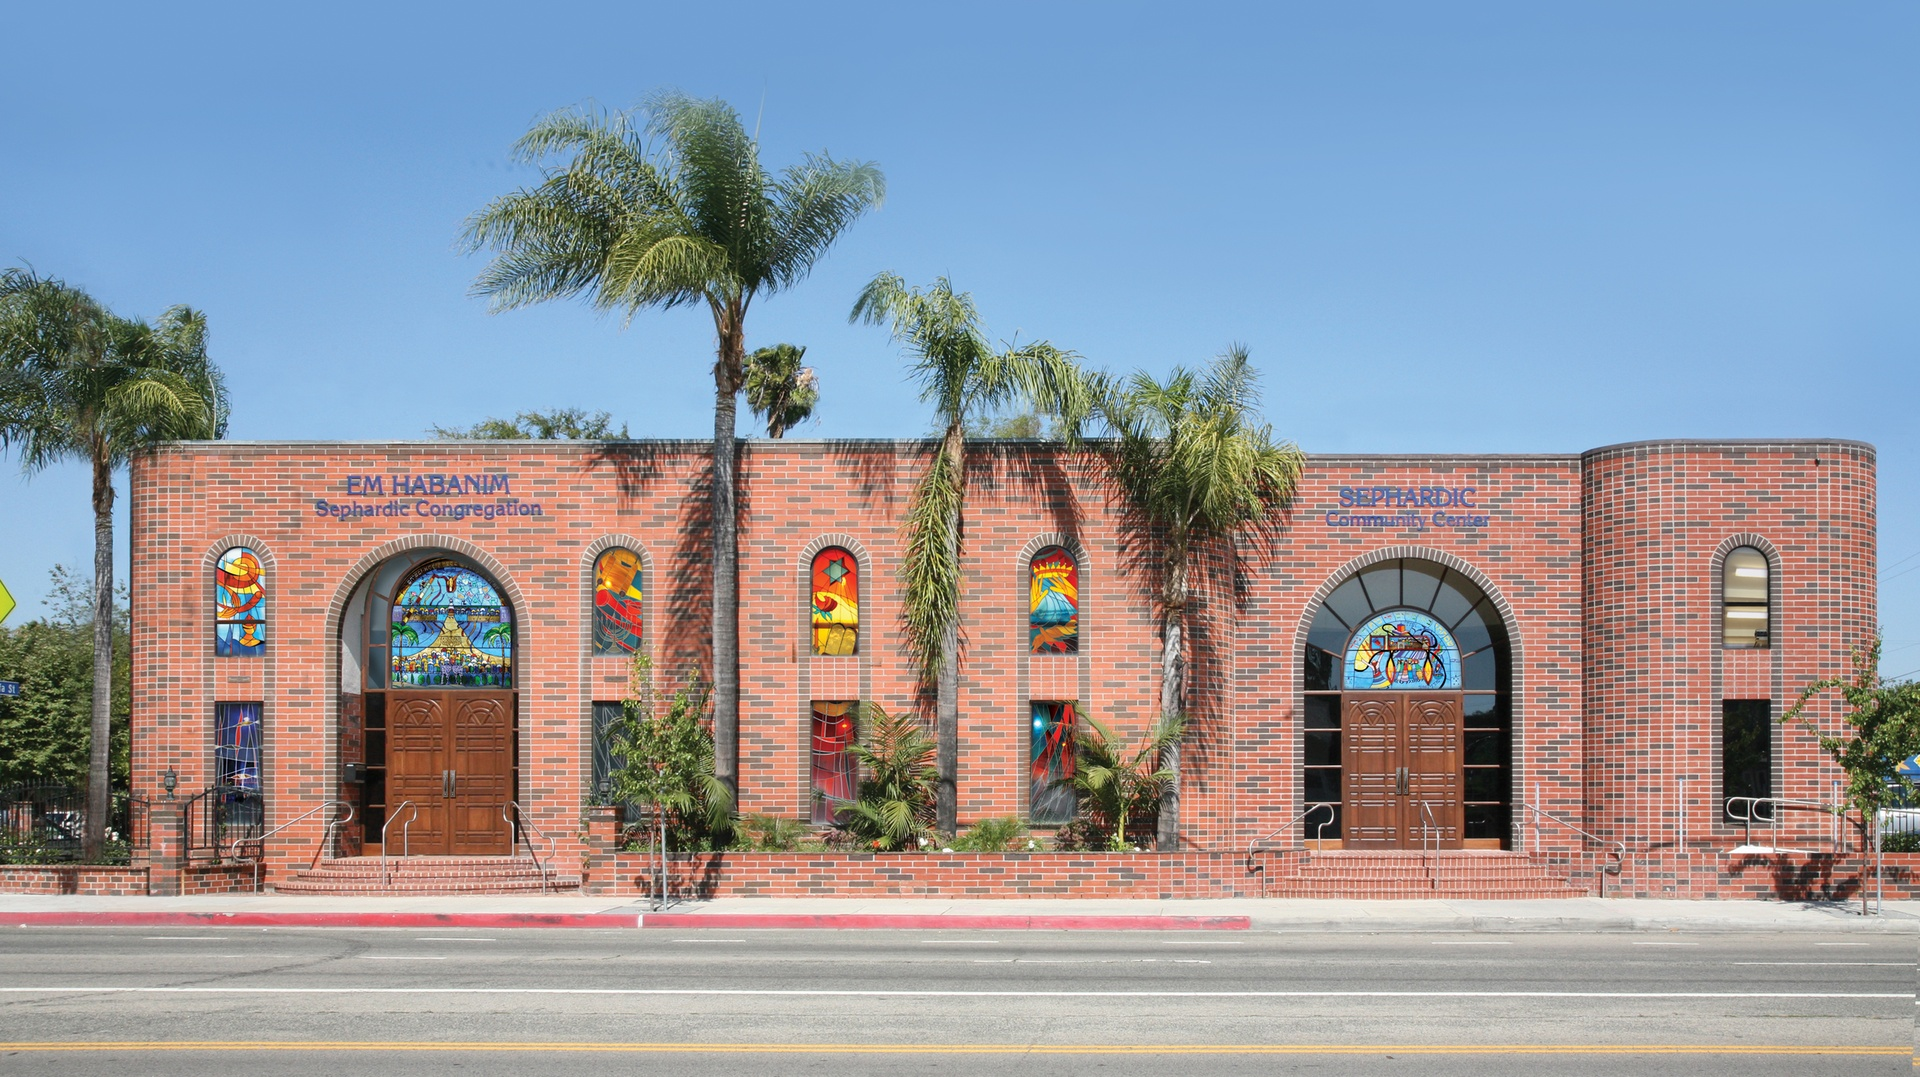 Em Habanim Sephardic Congregation, 5850 Laurel Canyon Blvd, North Hollywood, CA, 91607, United States